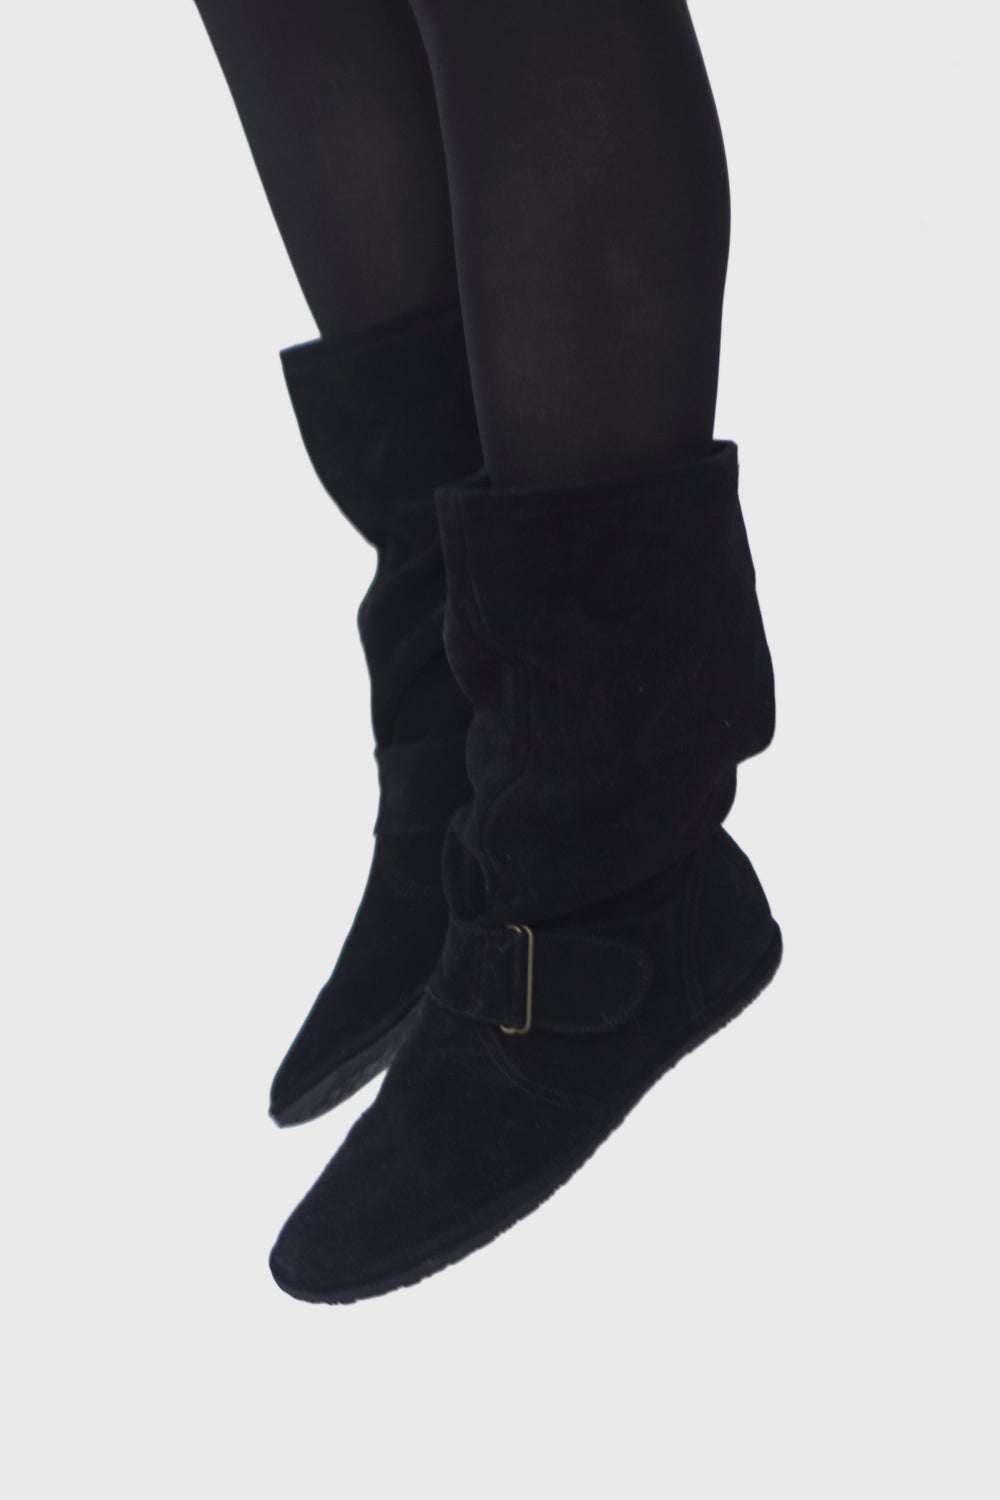 Image of Slouchy Boots in Black suede